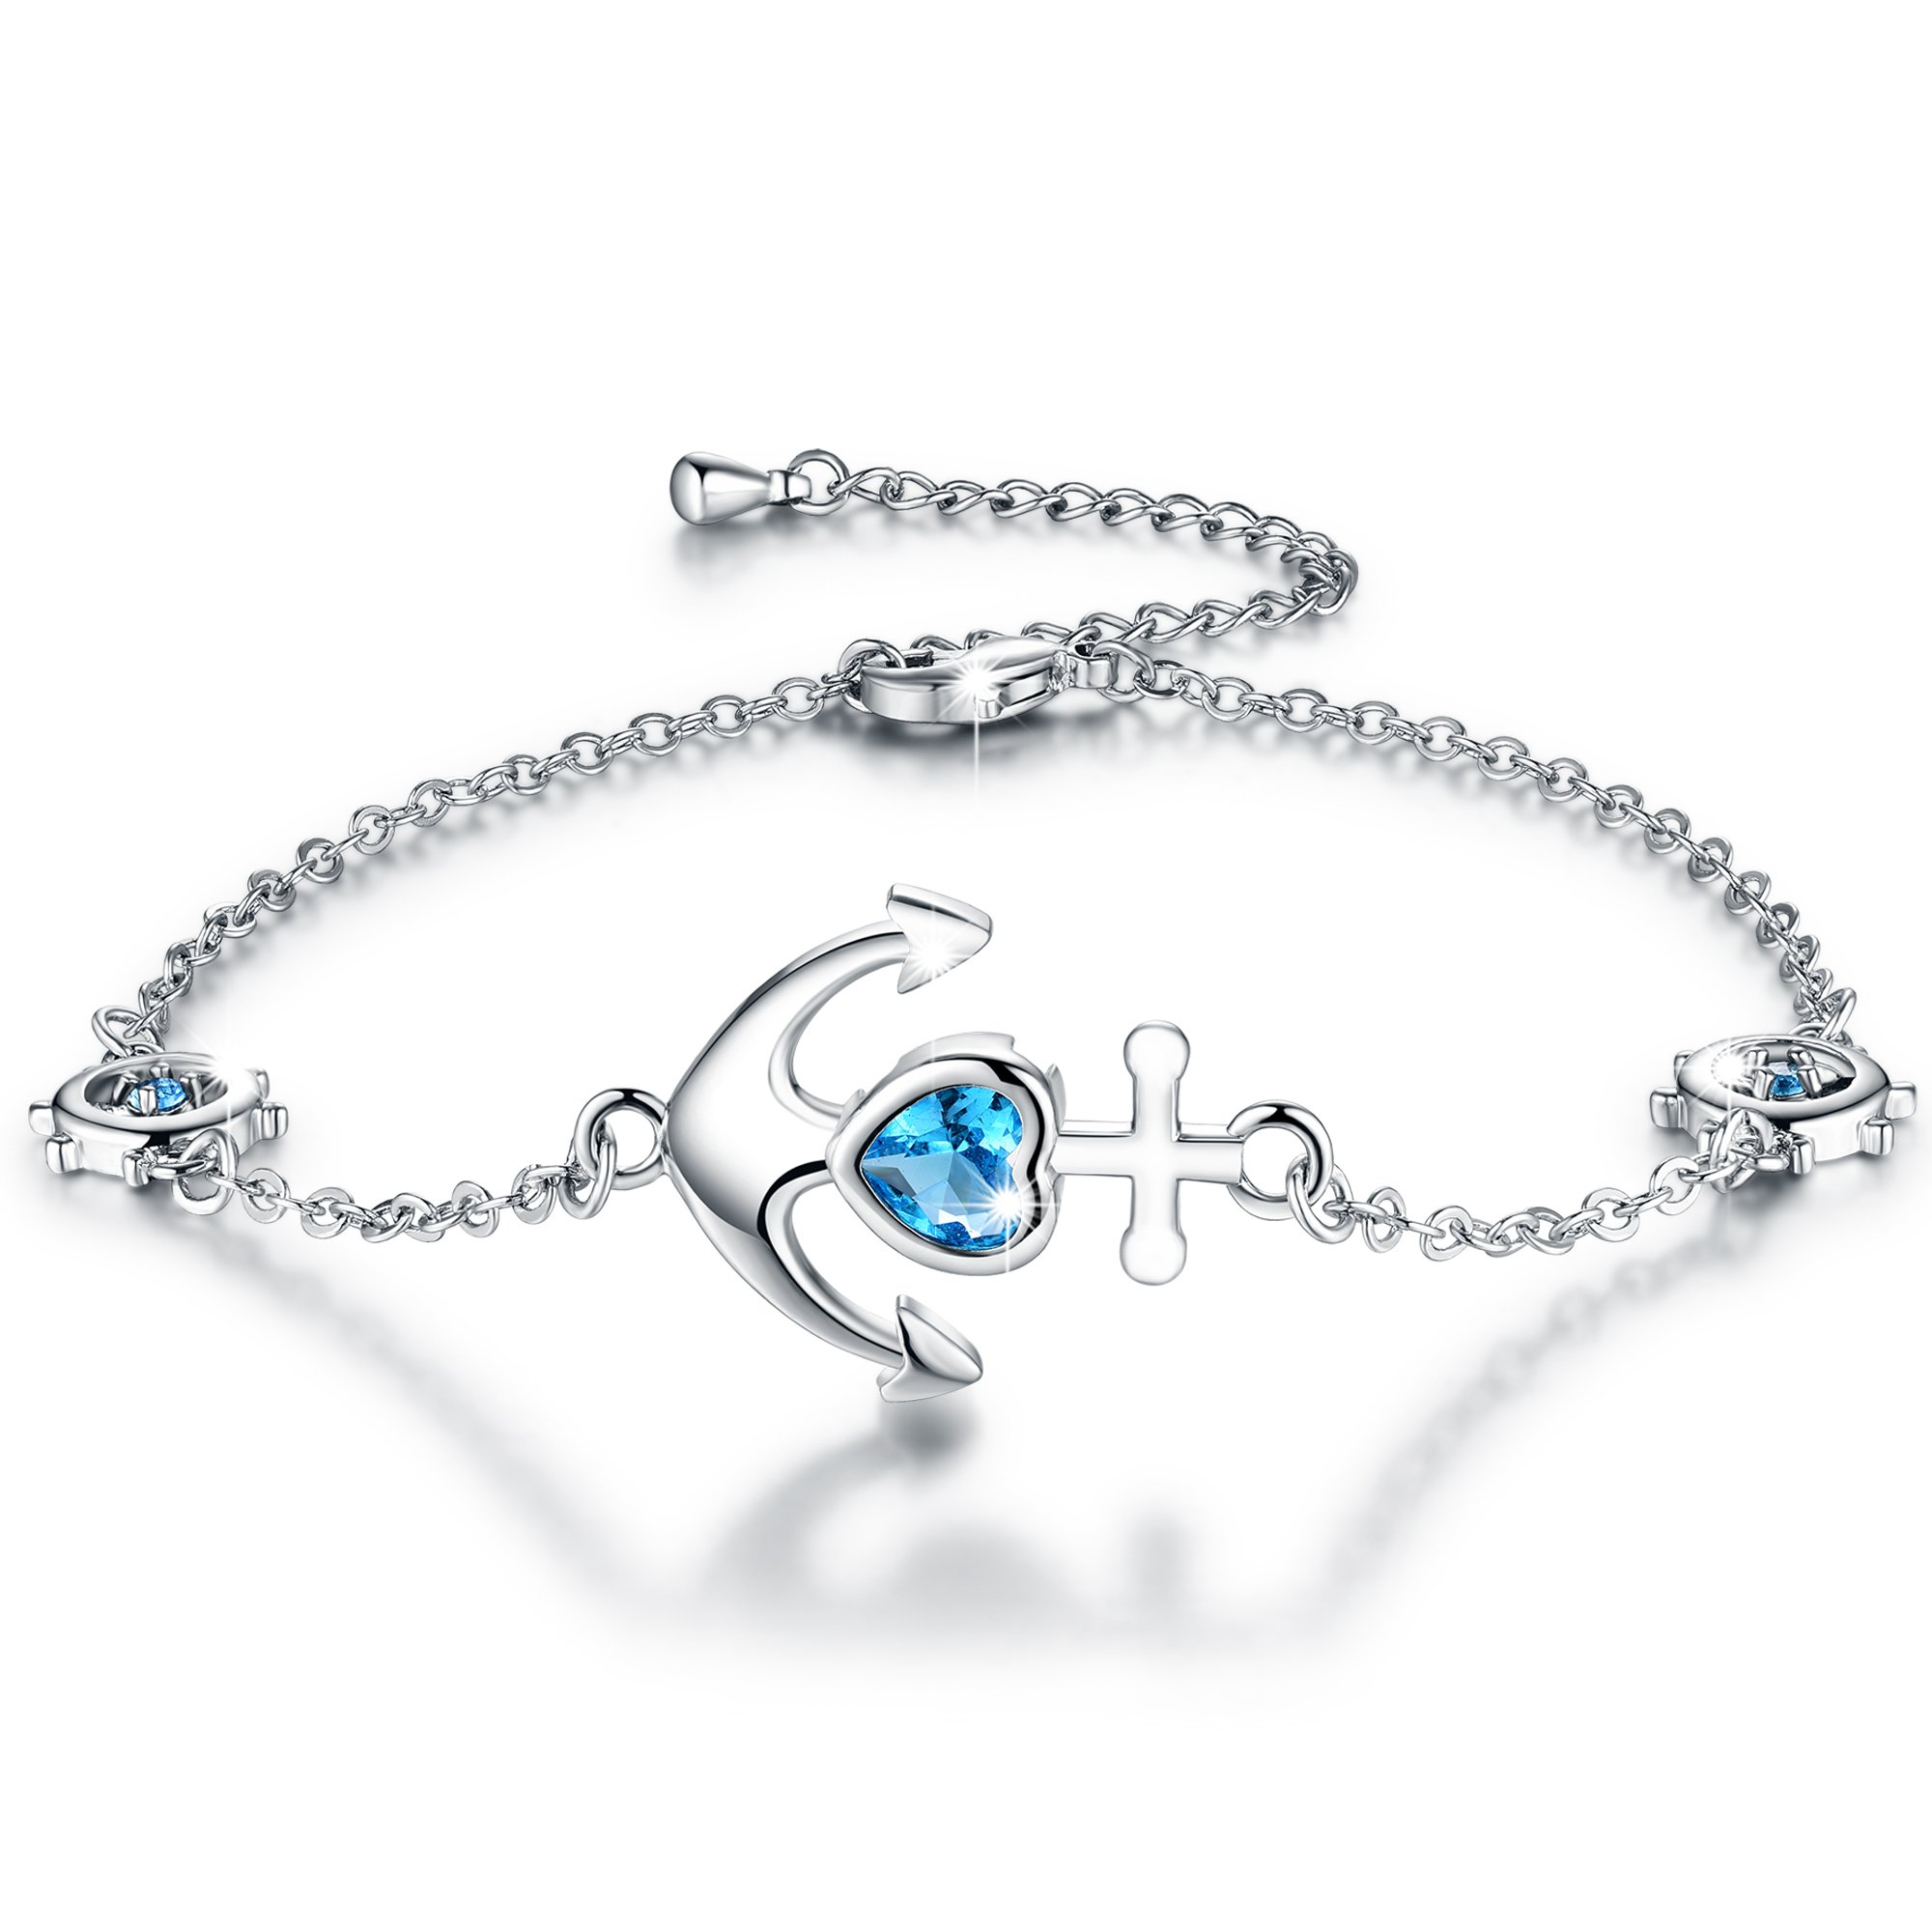 Boniris 925 Sterling Silver Anchor Heart Bracelet Womens Sailor Symbol Love Jewelry with Sapphire for Mother's Day, Birthday